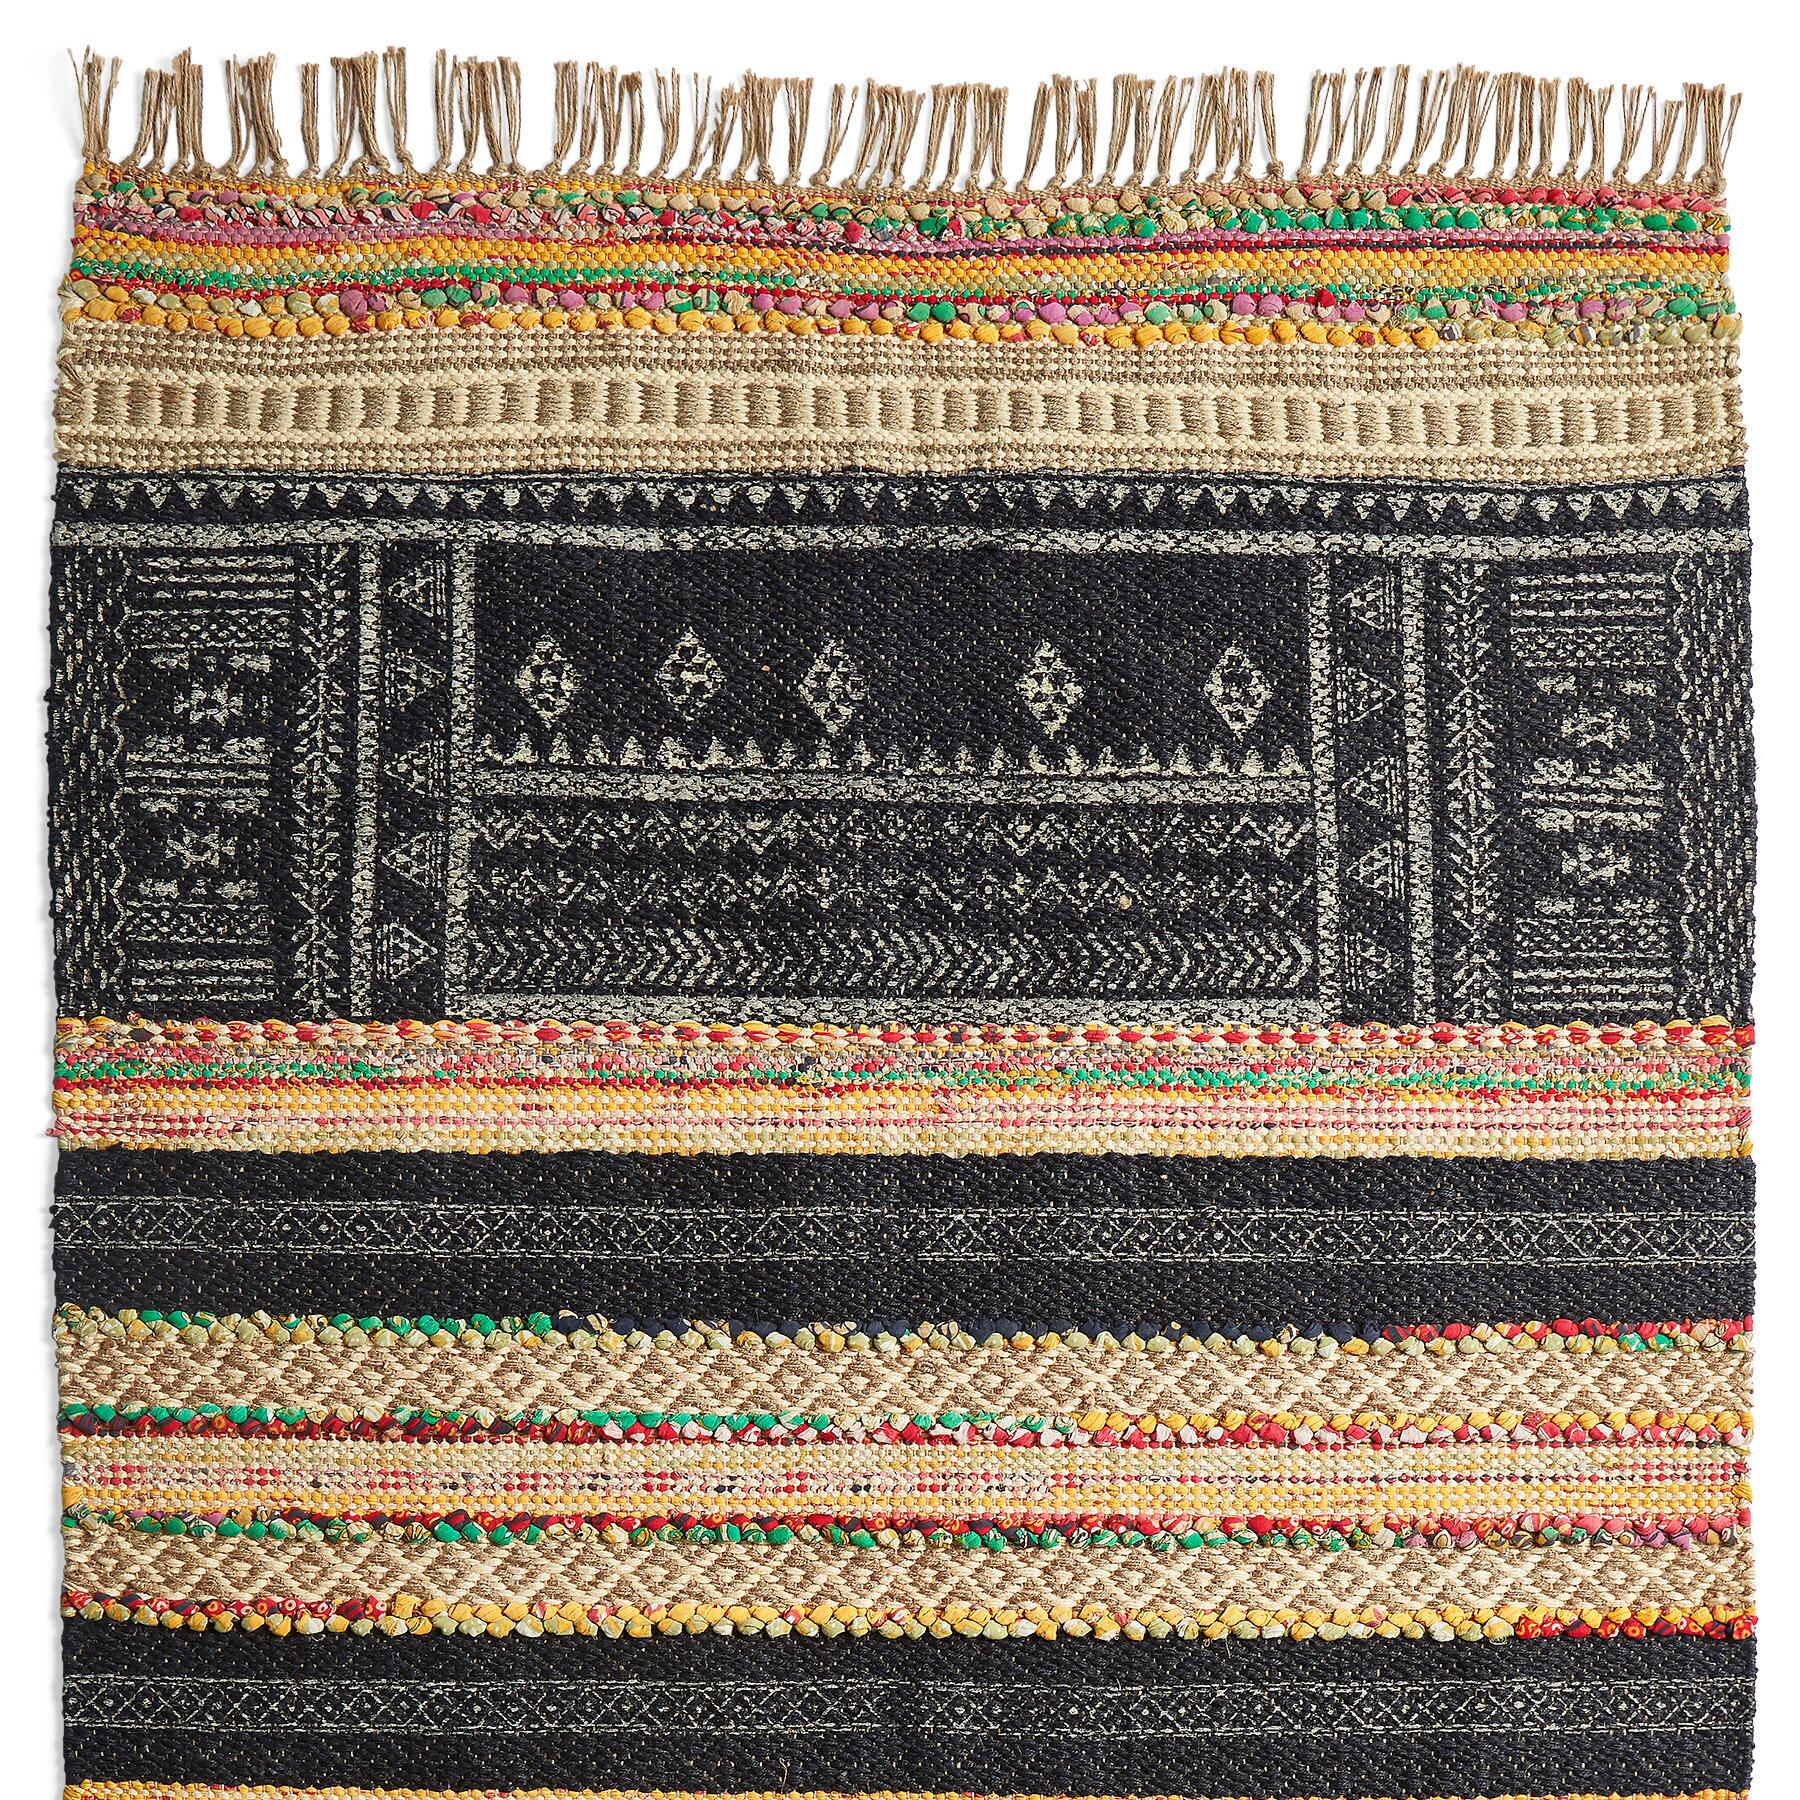 Zola Dhurrie Rug from Sundance Catalog - Sundance Catalog Home Decor + A Few of My Artisan Favorite Things!